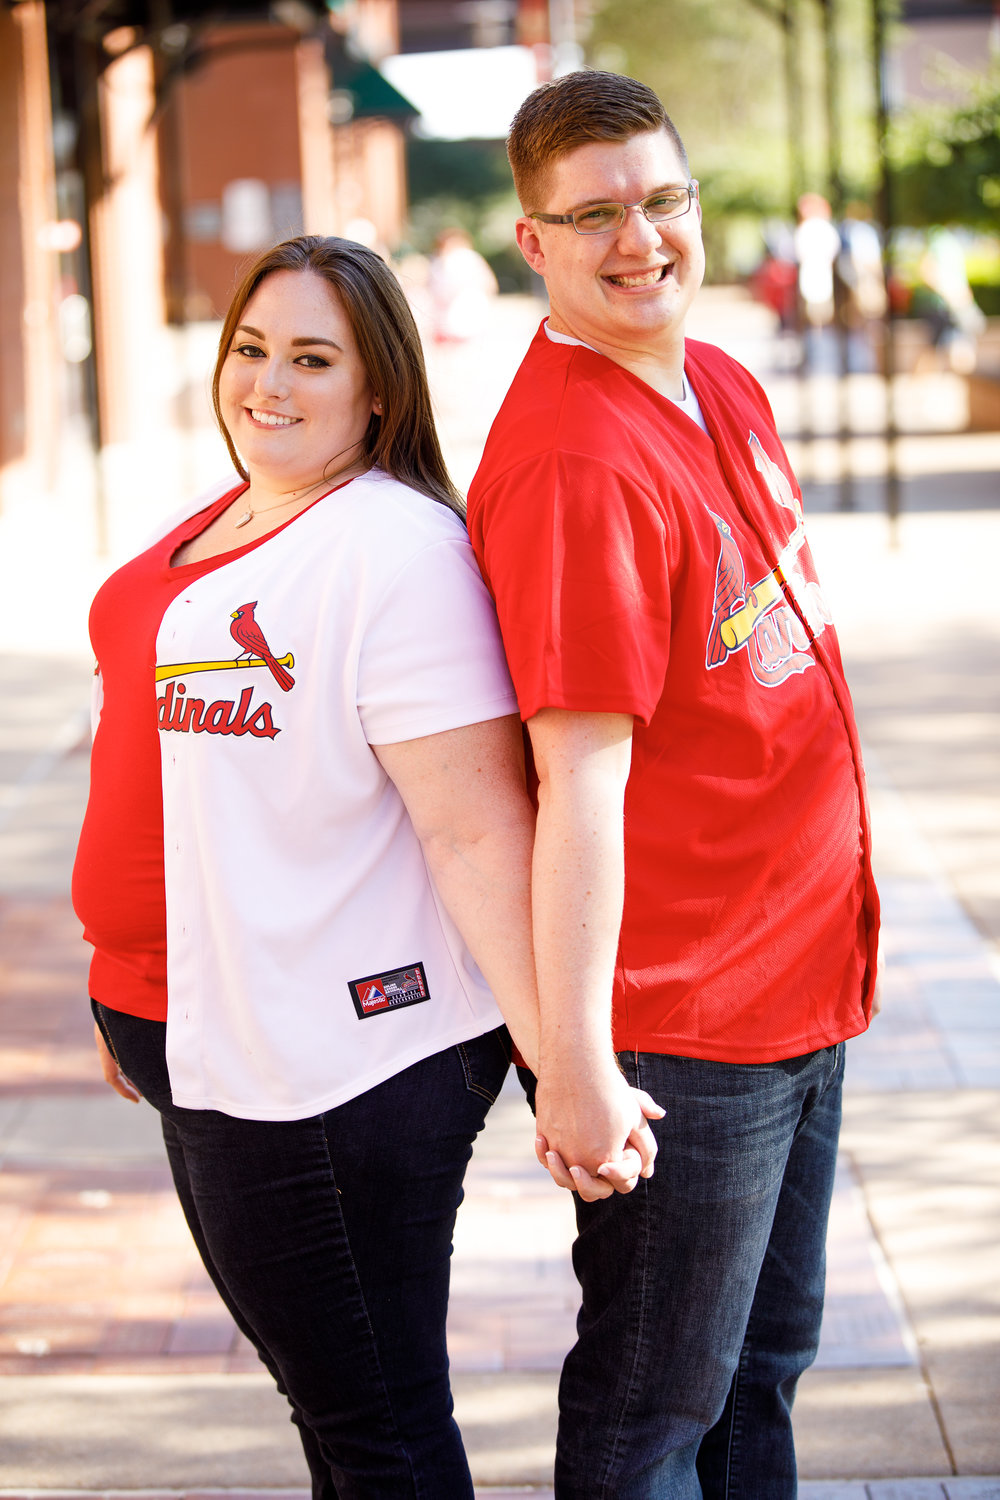 Busch Stadium and Forest Park Engagement Photos by St Louis Wedding Photographers and Videographers Oldani Photography 1.jpg